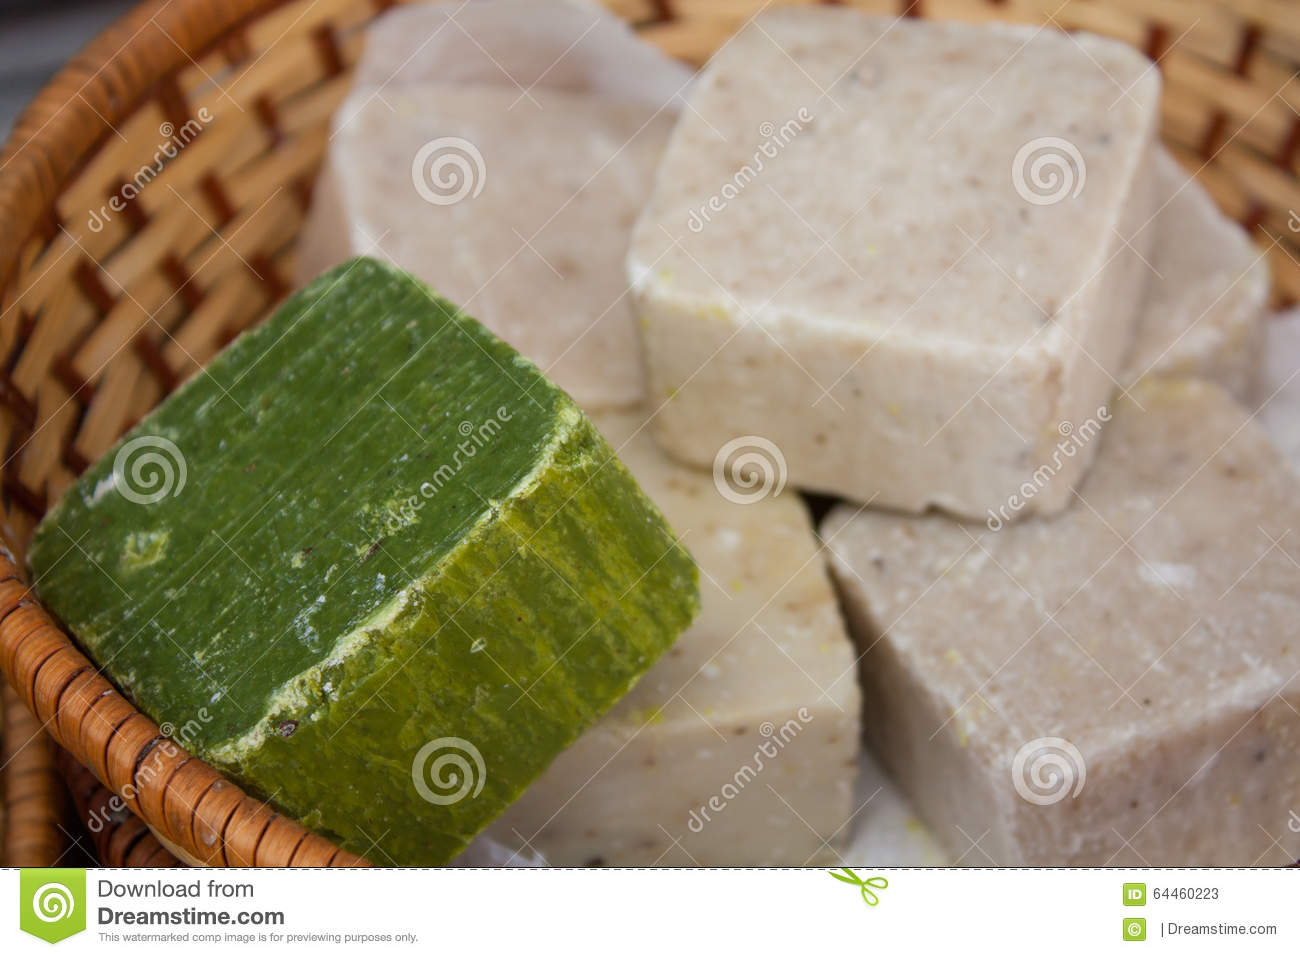 how to cut soap into bars